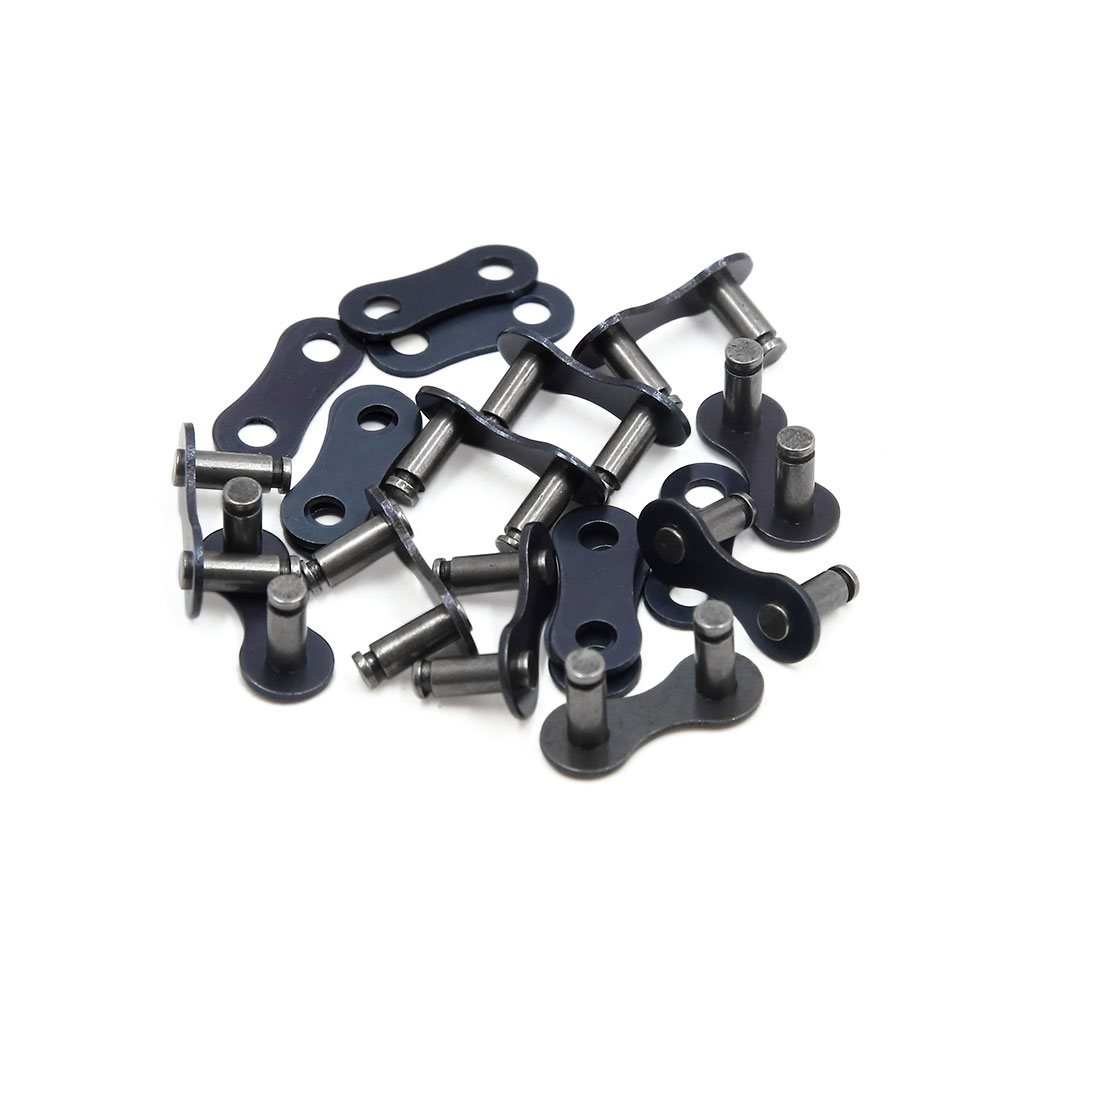 Quick Chain Joint Links Repair Accessories Bicycle Kit Parts Useful Hot